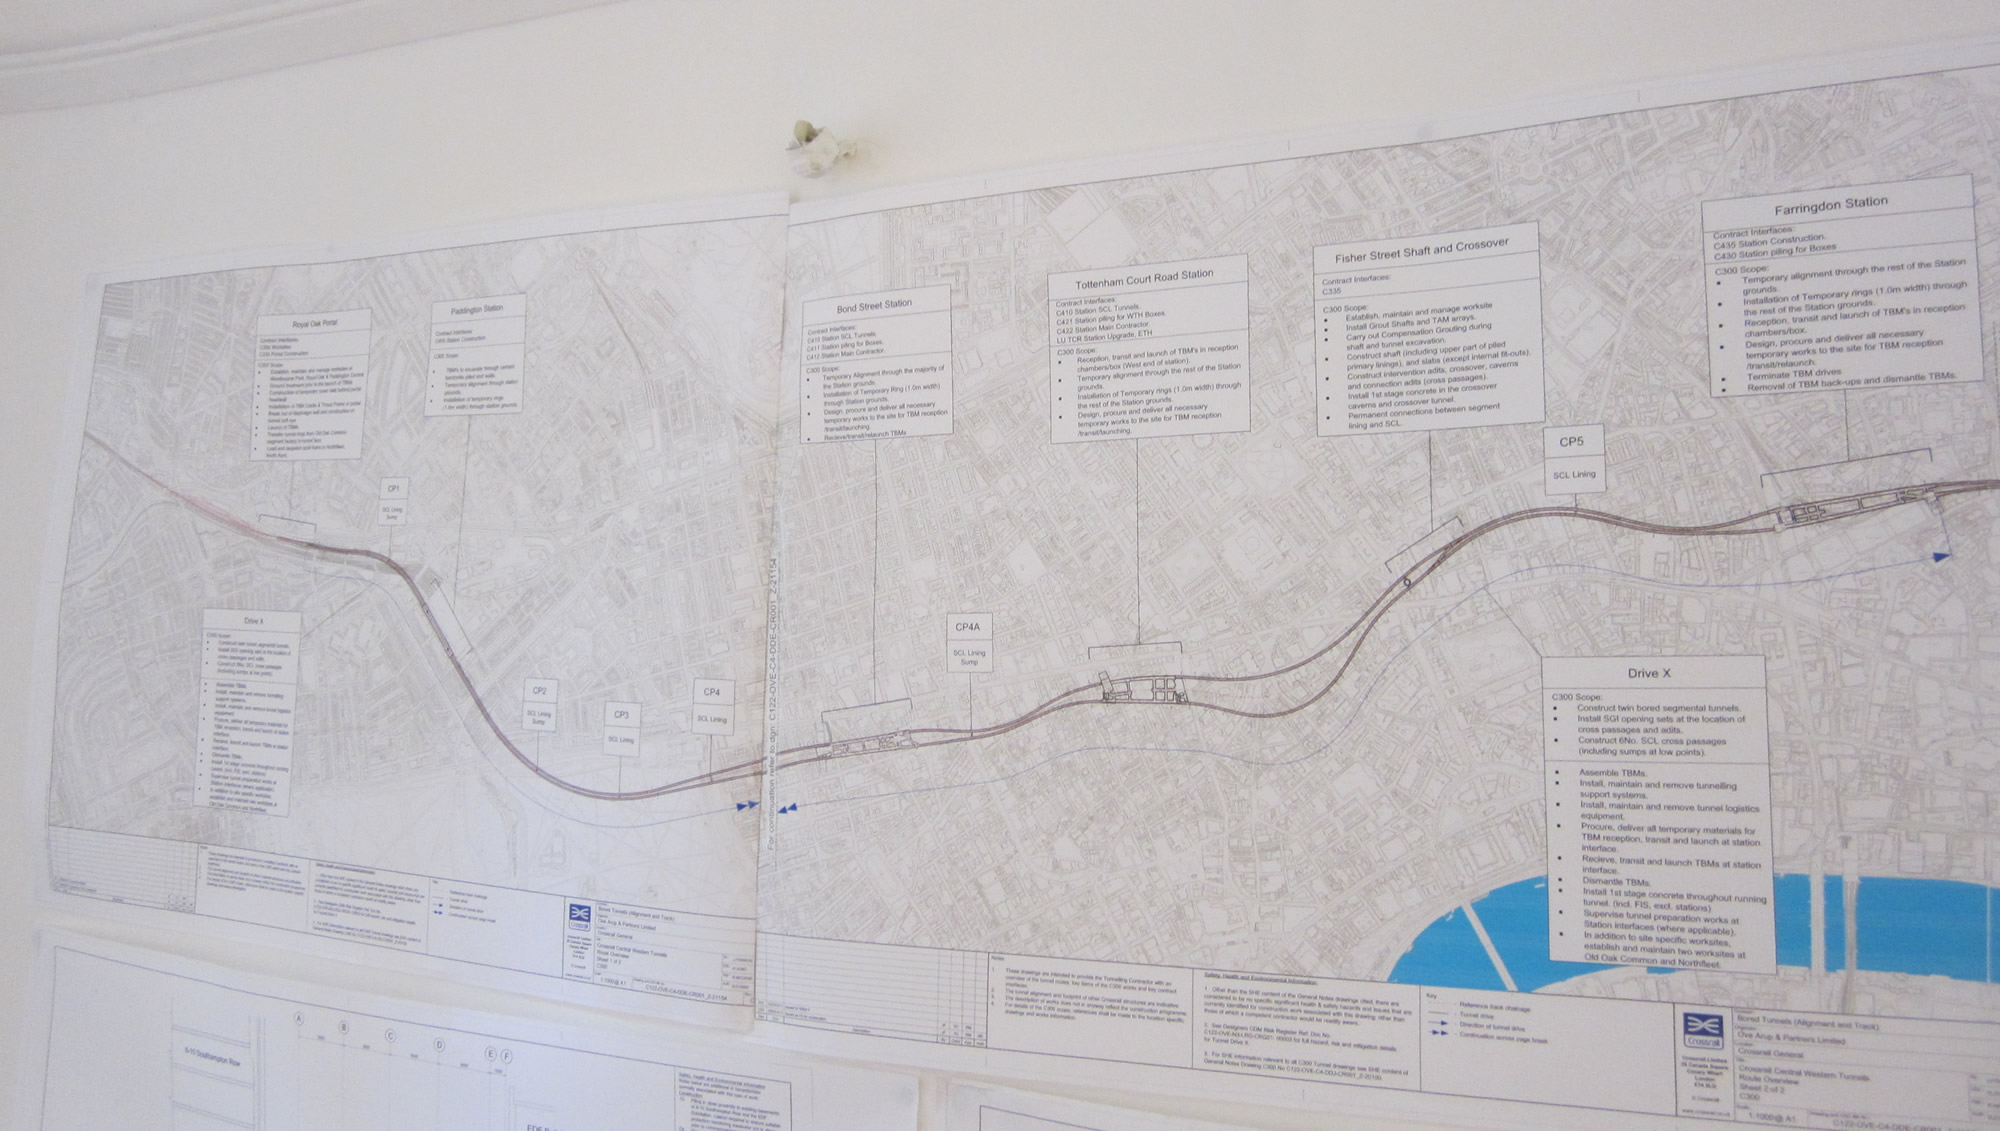 The route of Crossrail